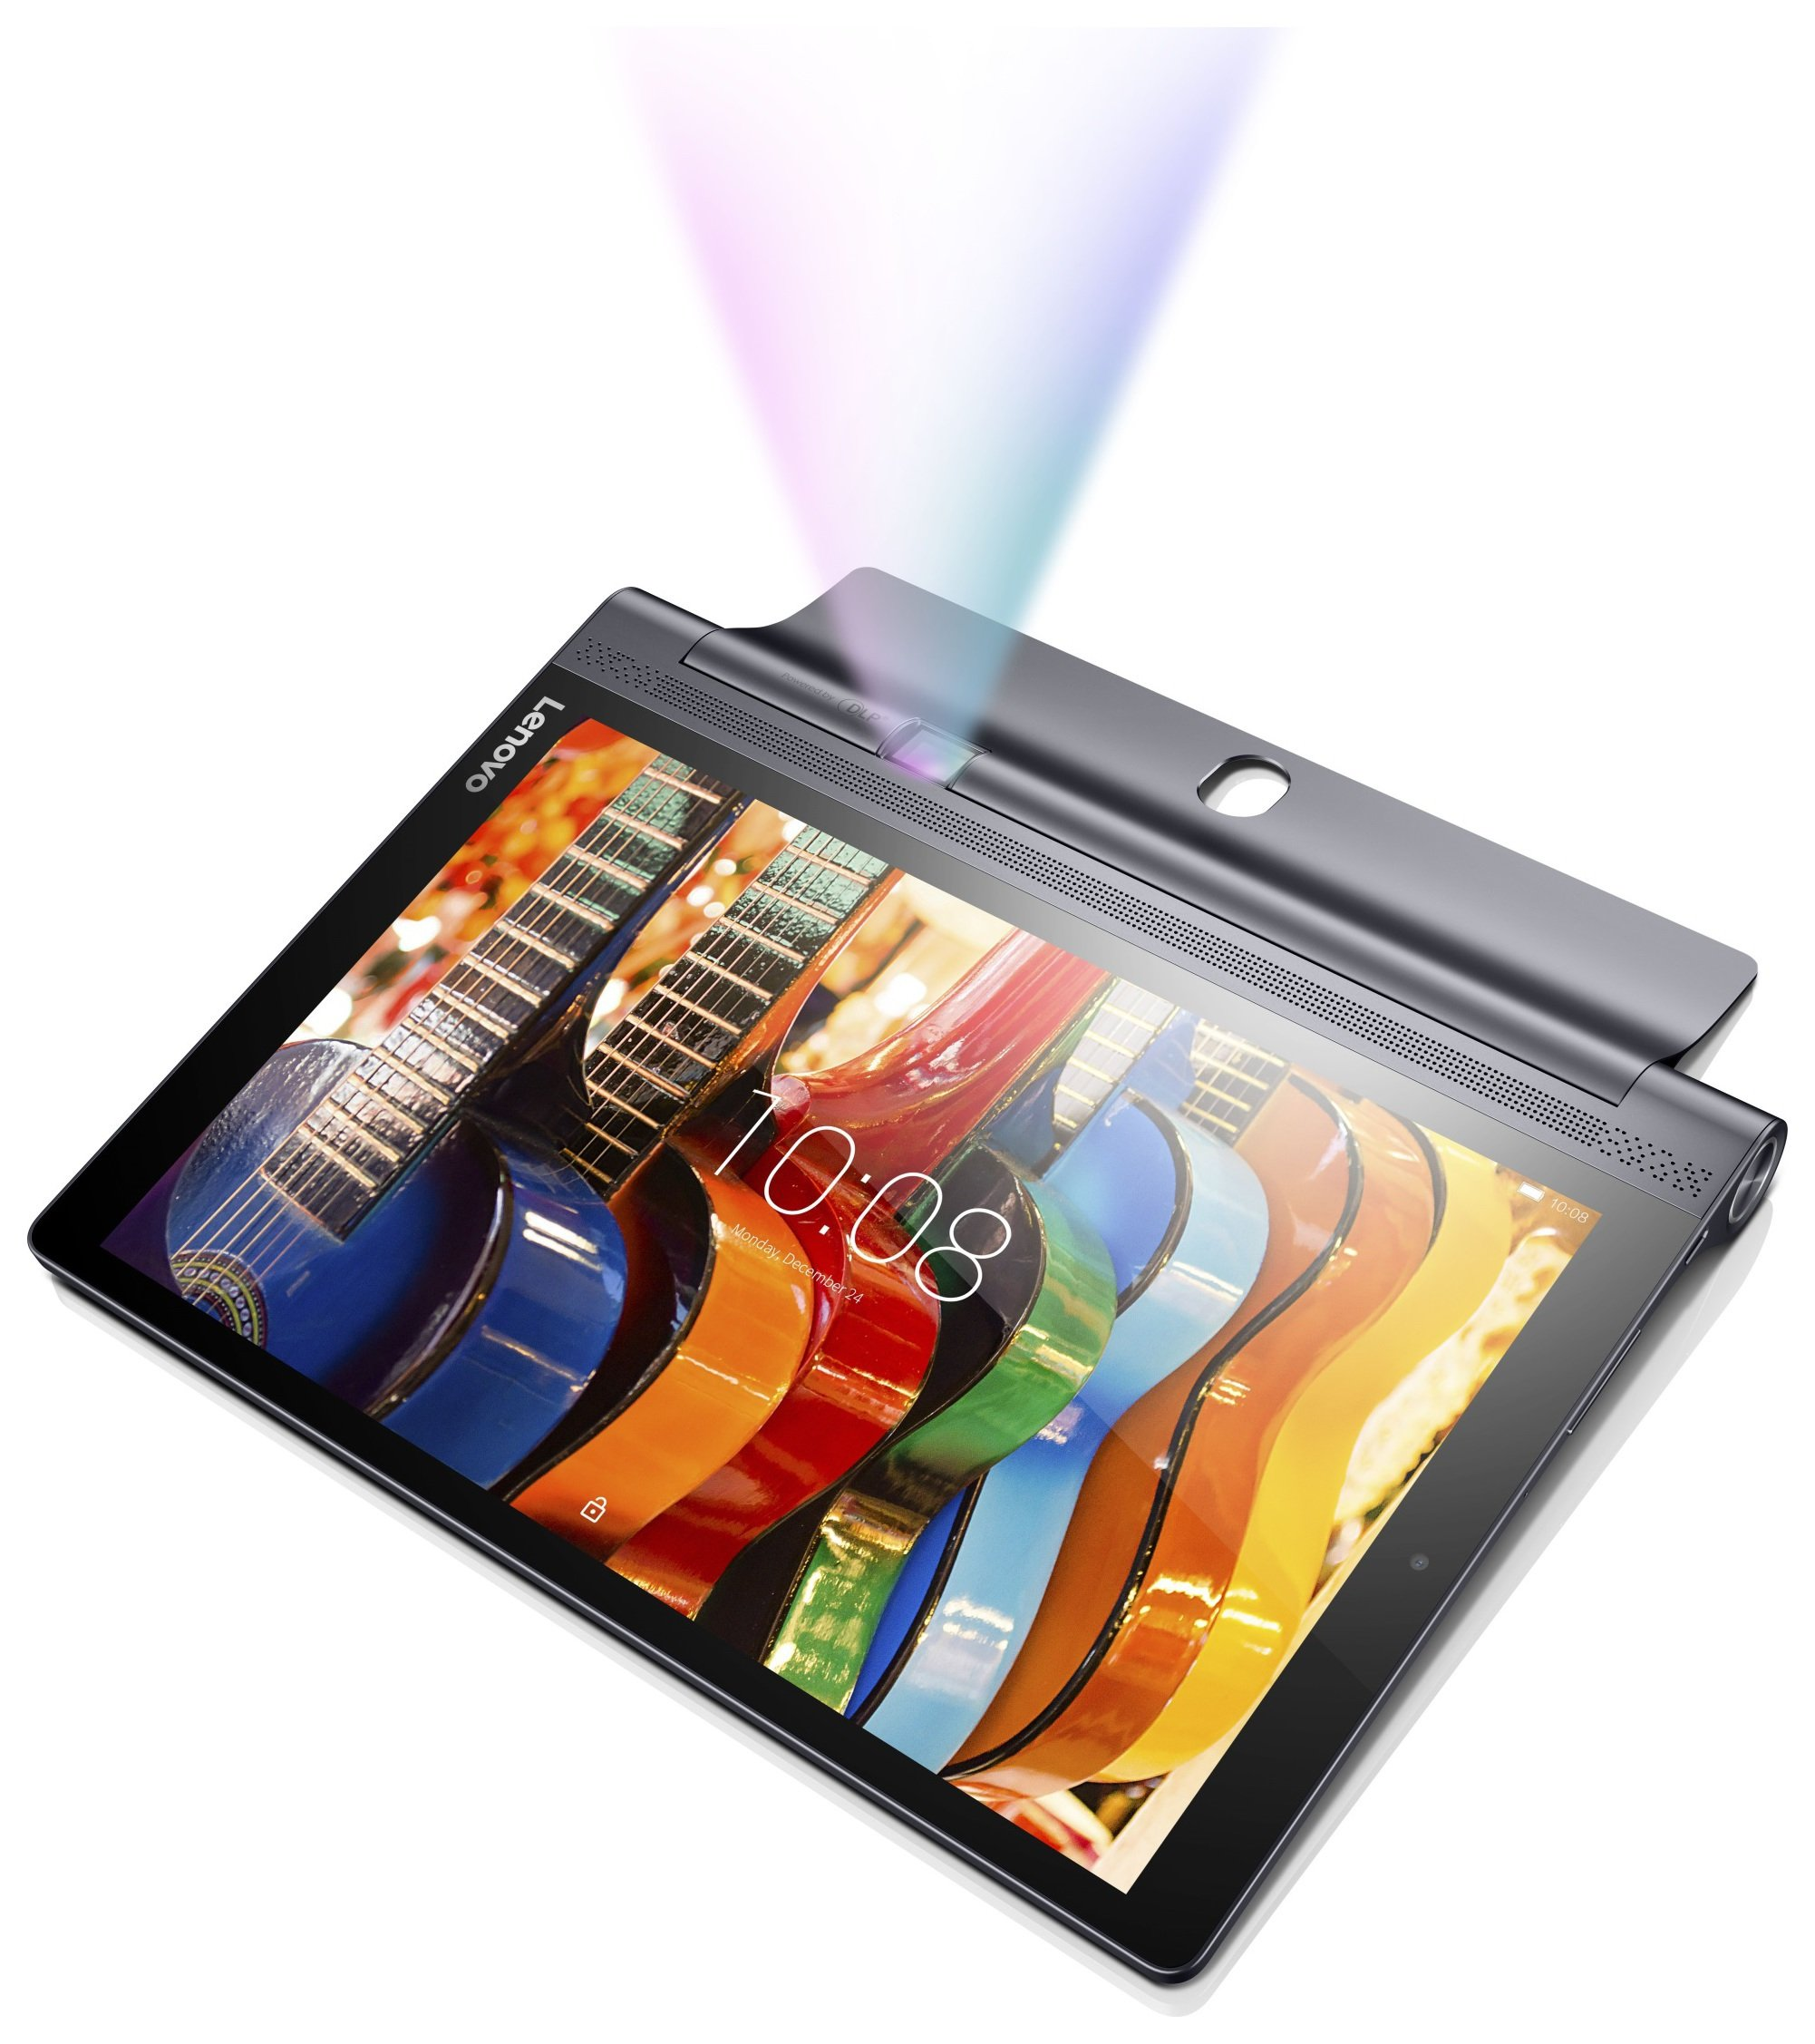 Image of Lenovo Yoga Tab 3 Pro 10 Inch 64GB Built in Projector Tablet